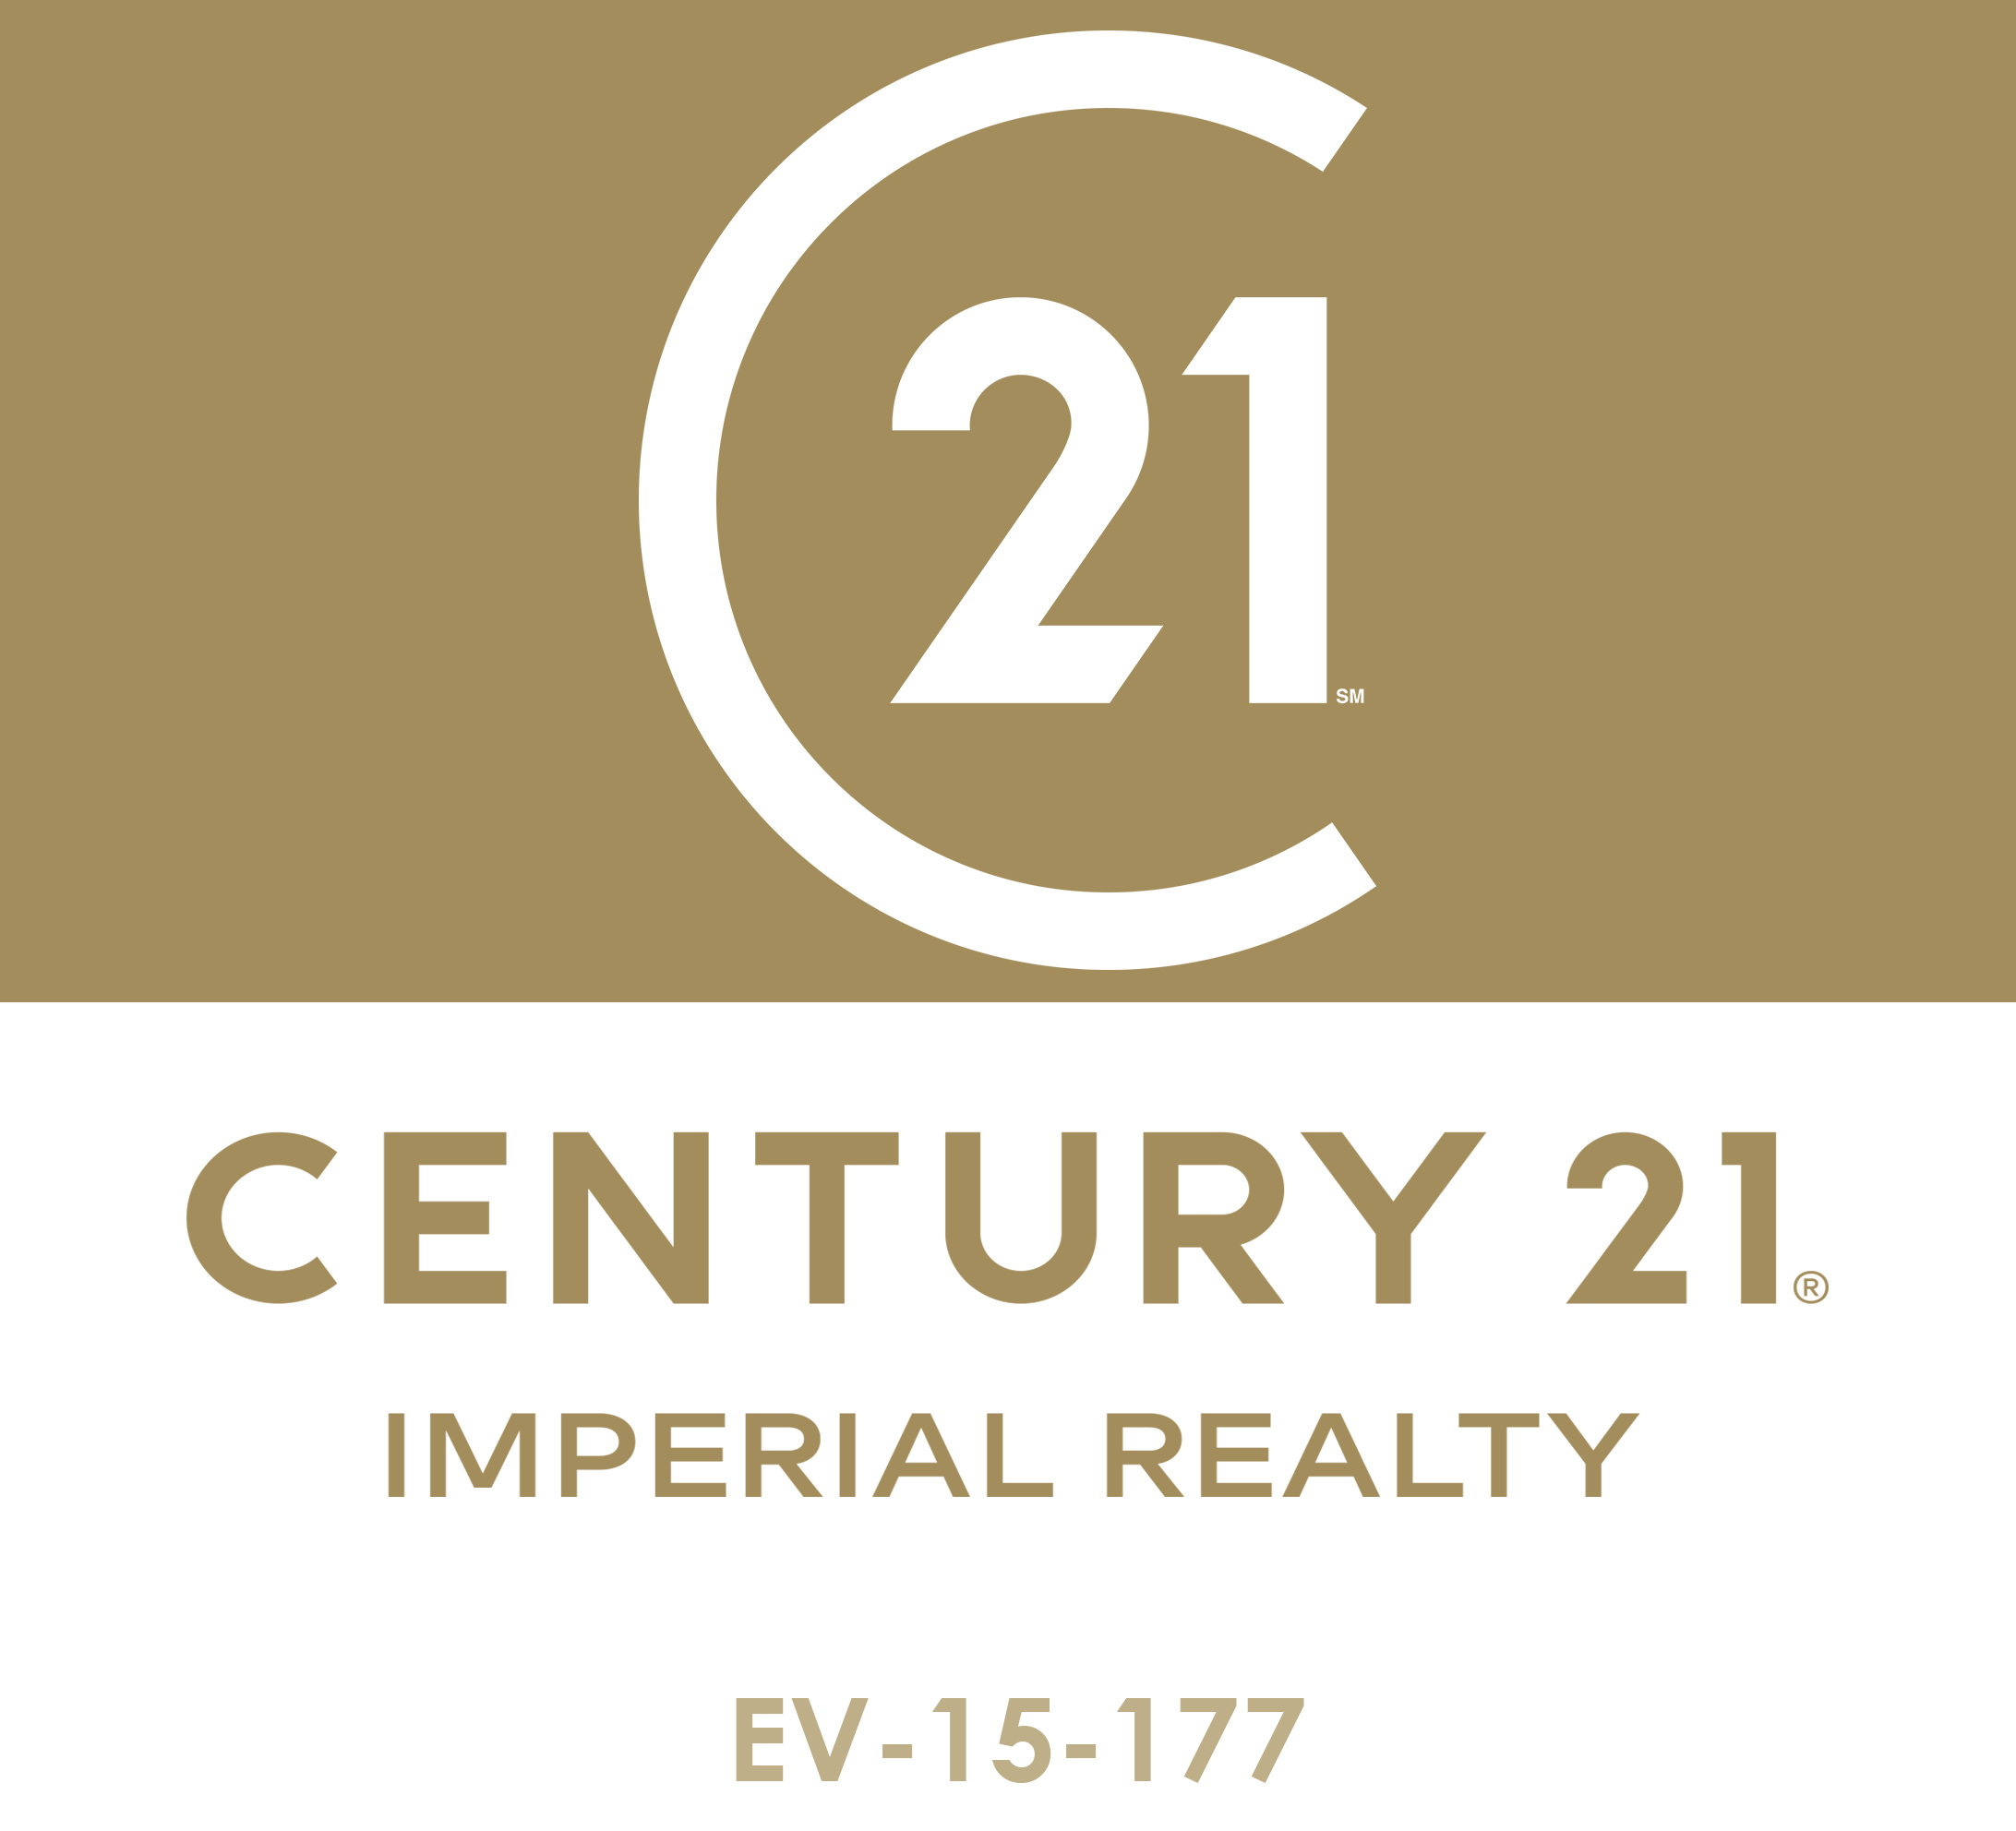 Century 21 Imperial Realty